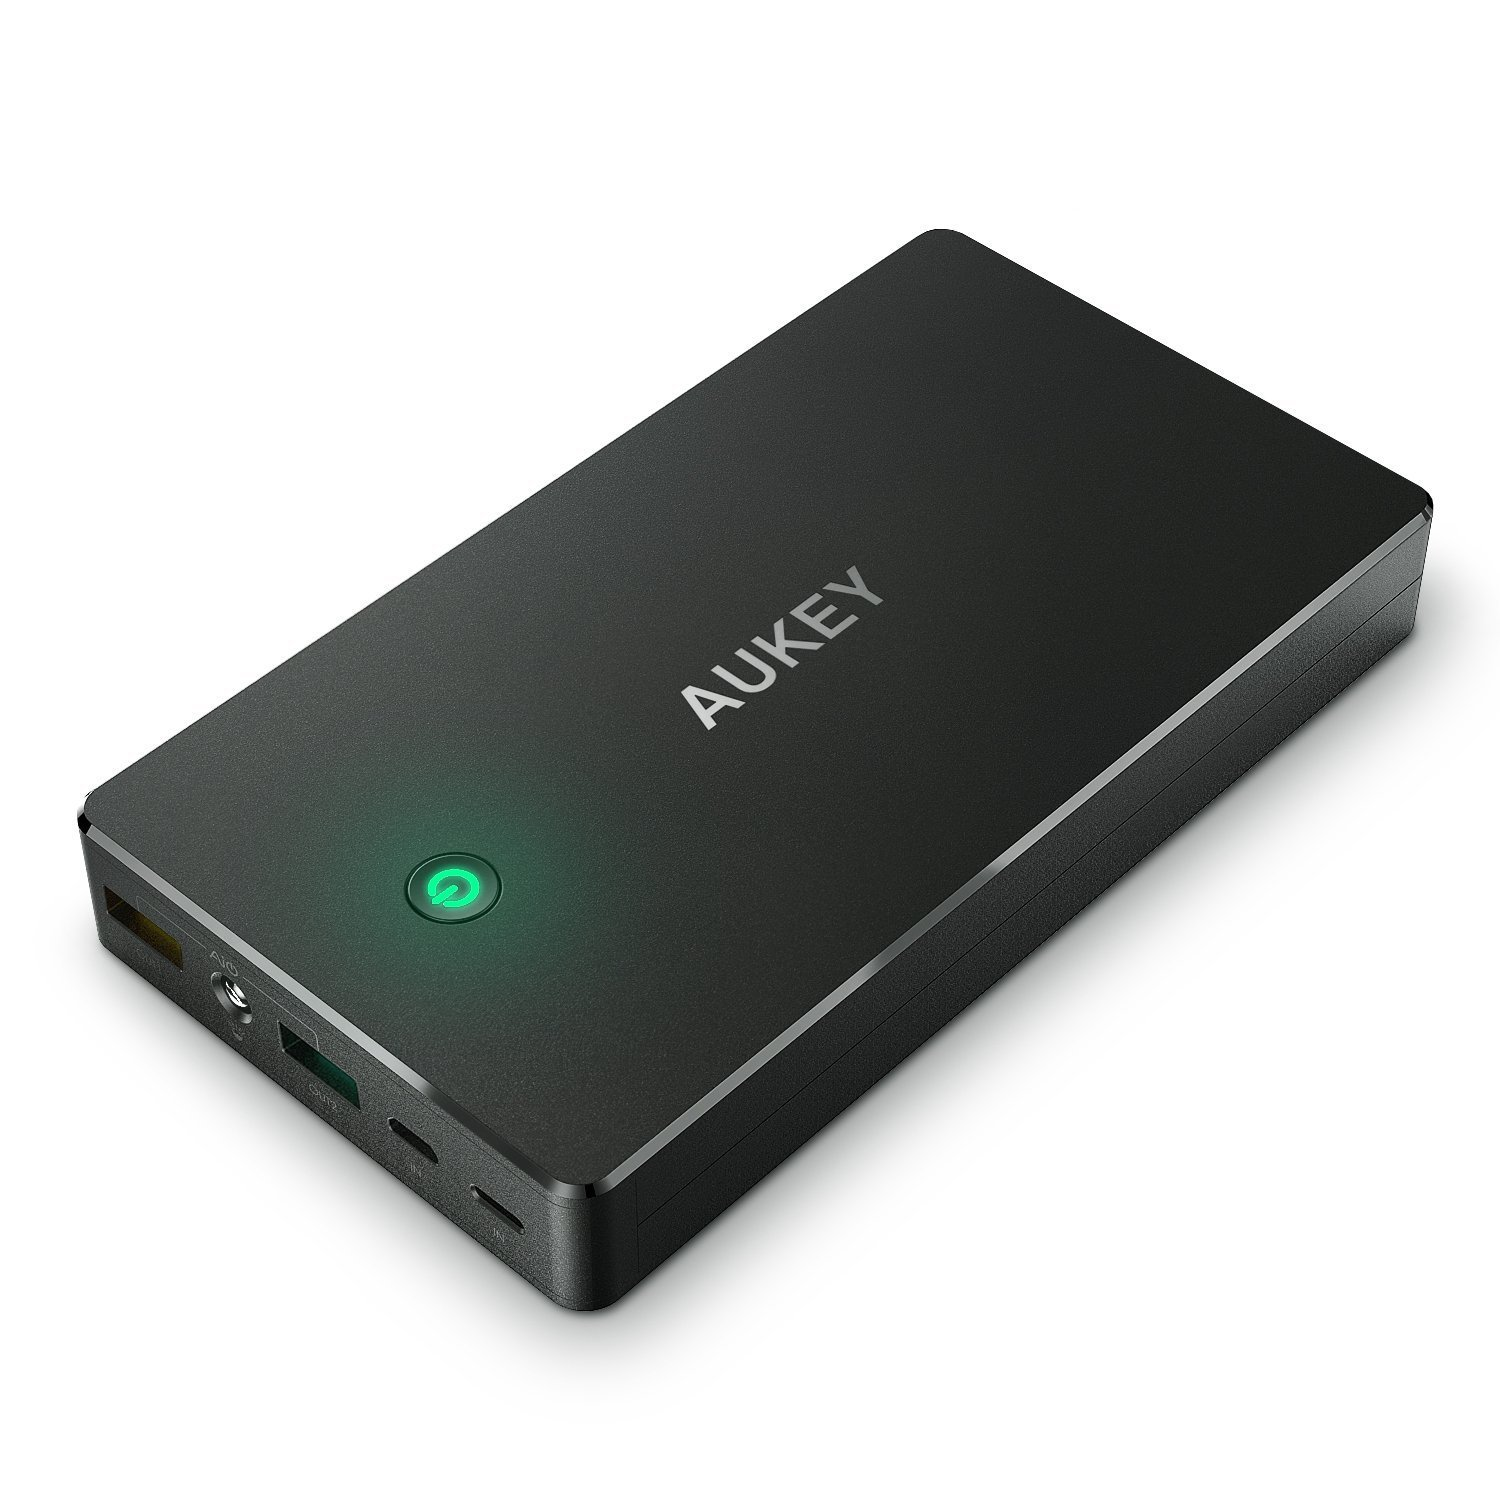 AUKEY Quick Charge 3.0 Power Bank 20000mAh with Lightning & Micro USB Input @Amazon